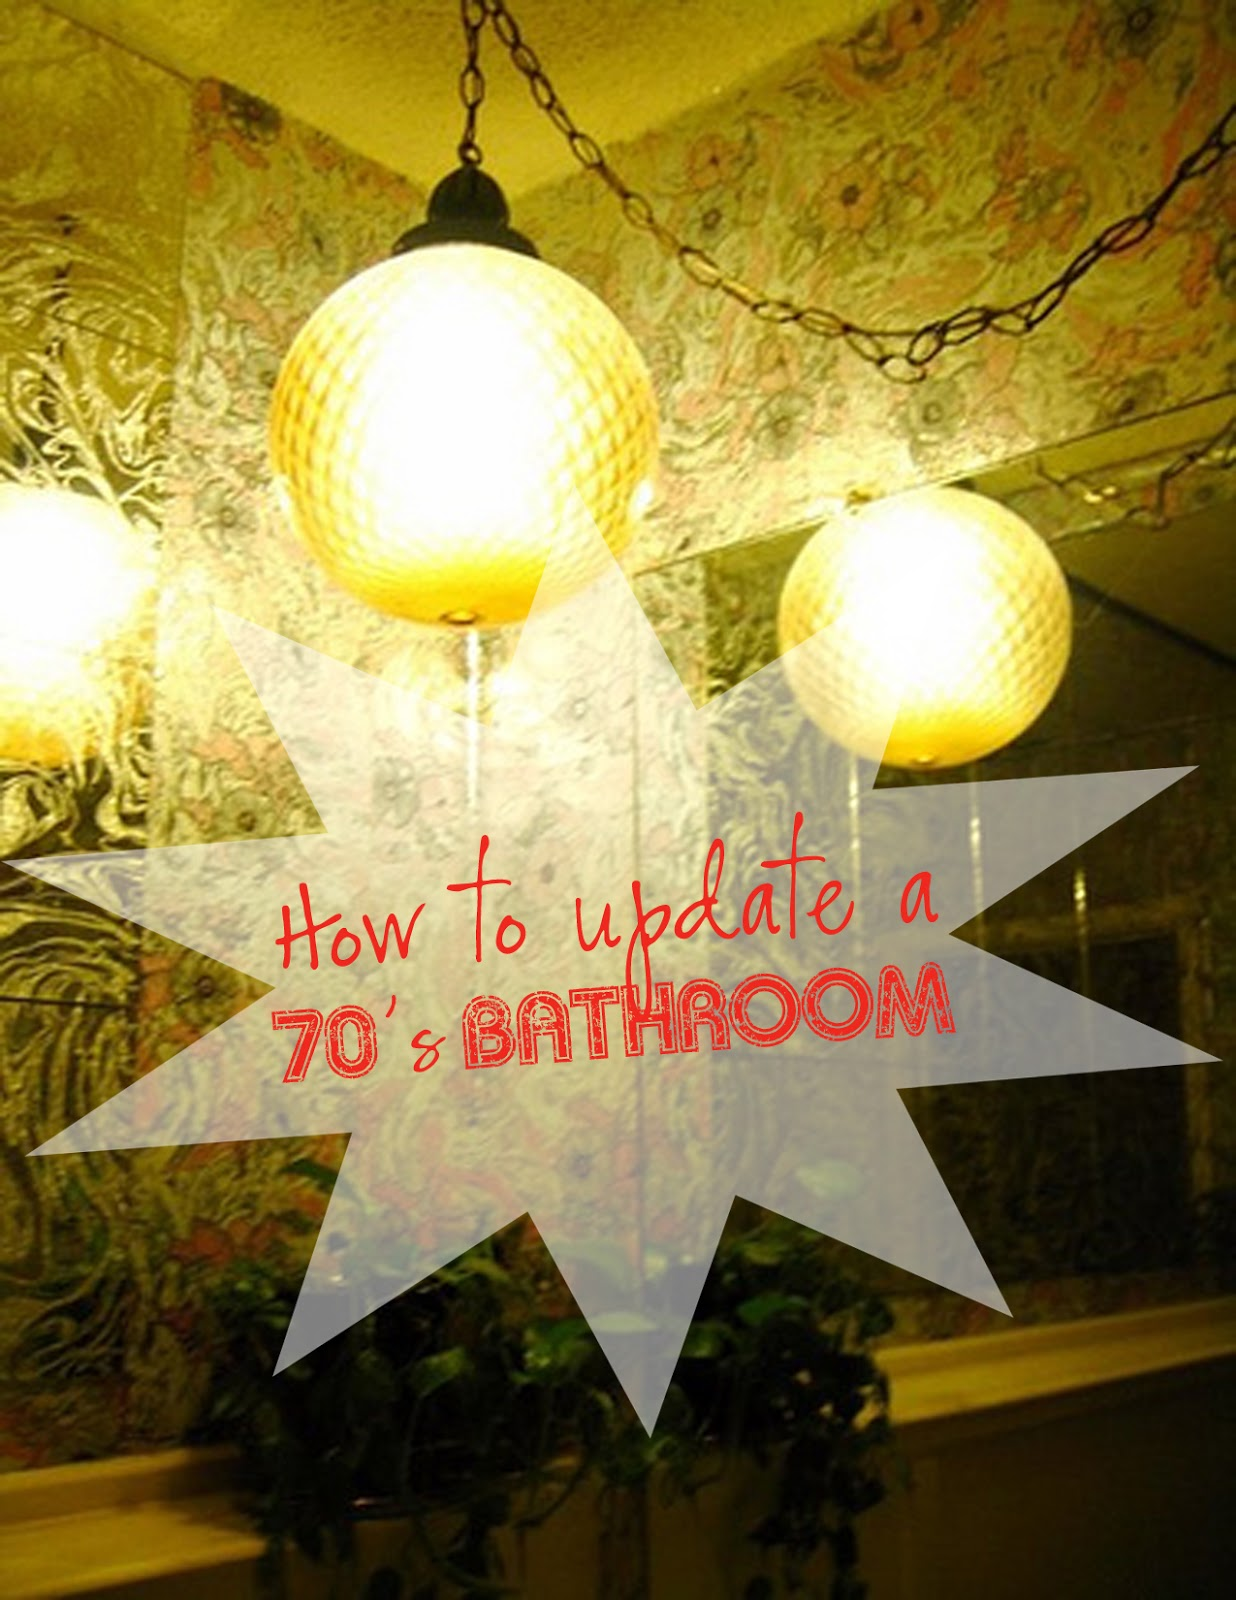 Twine: How to update a 70\'s Bathroom